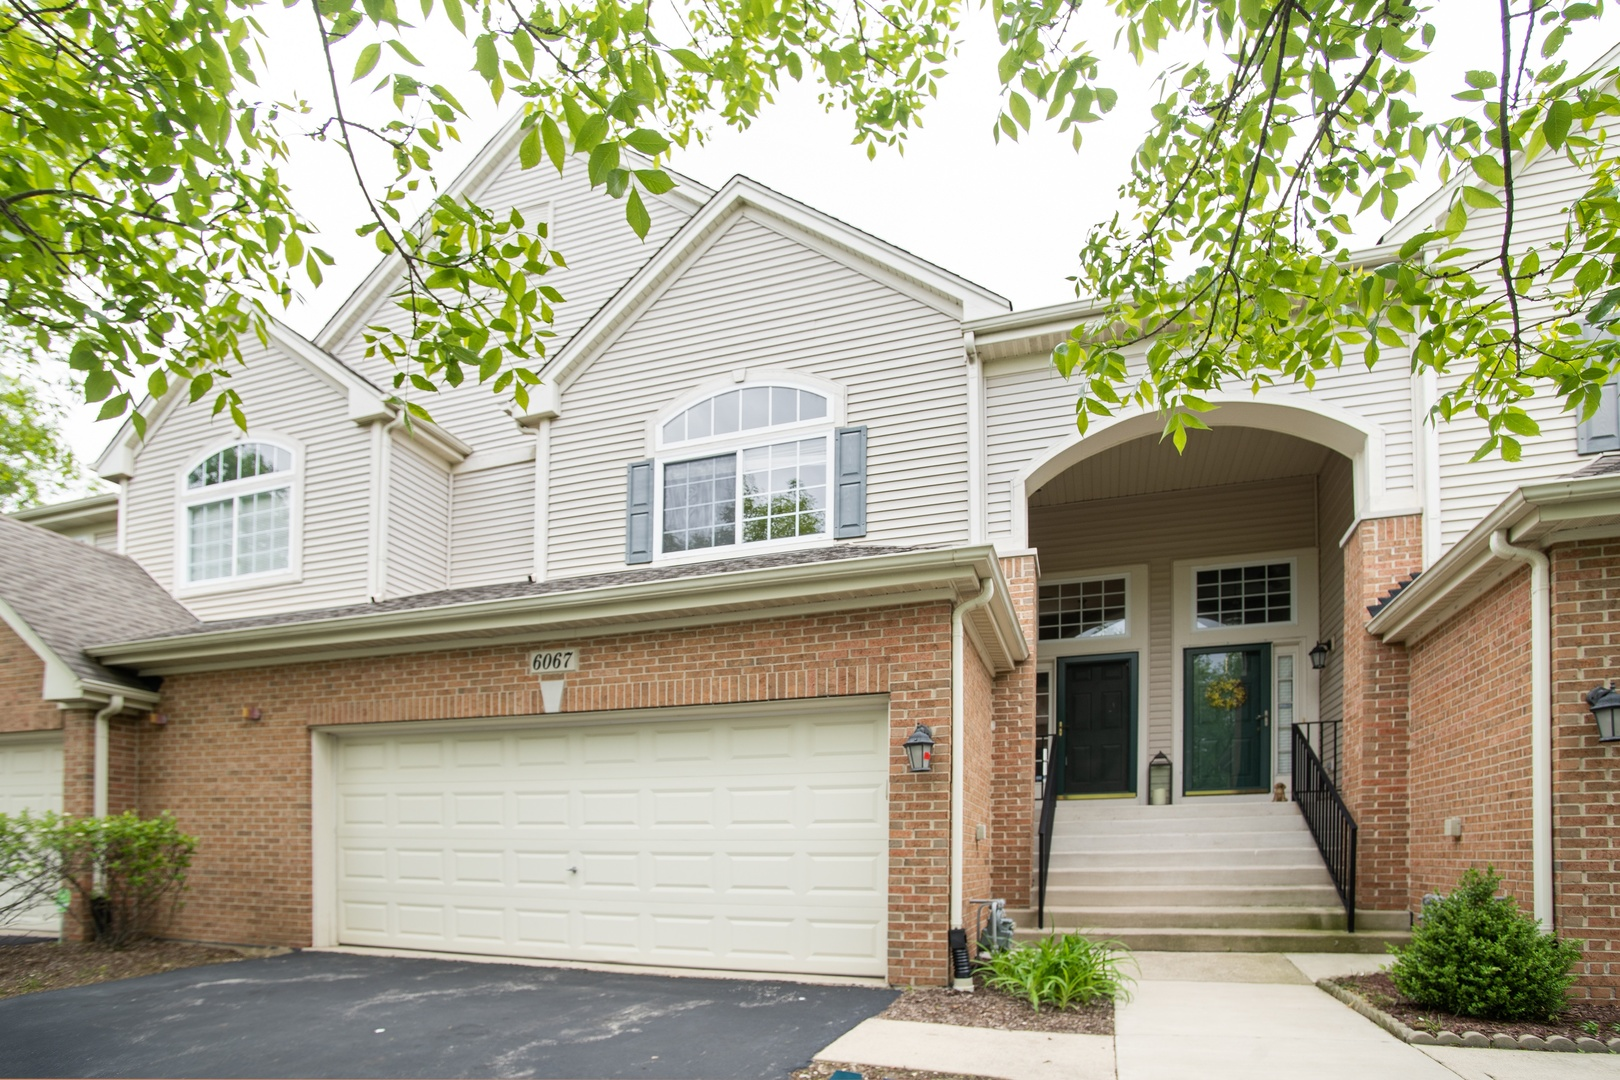 6067 Halloran, Hoffman Estates, Illinois, 60192